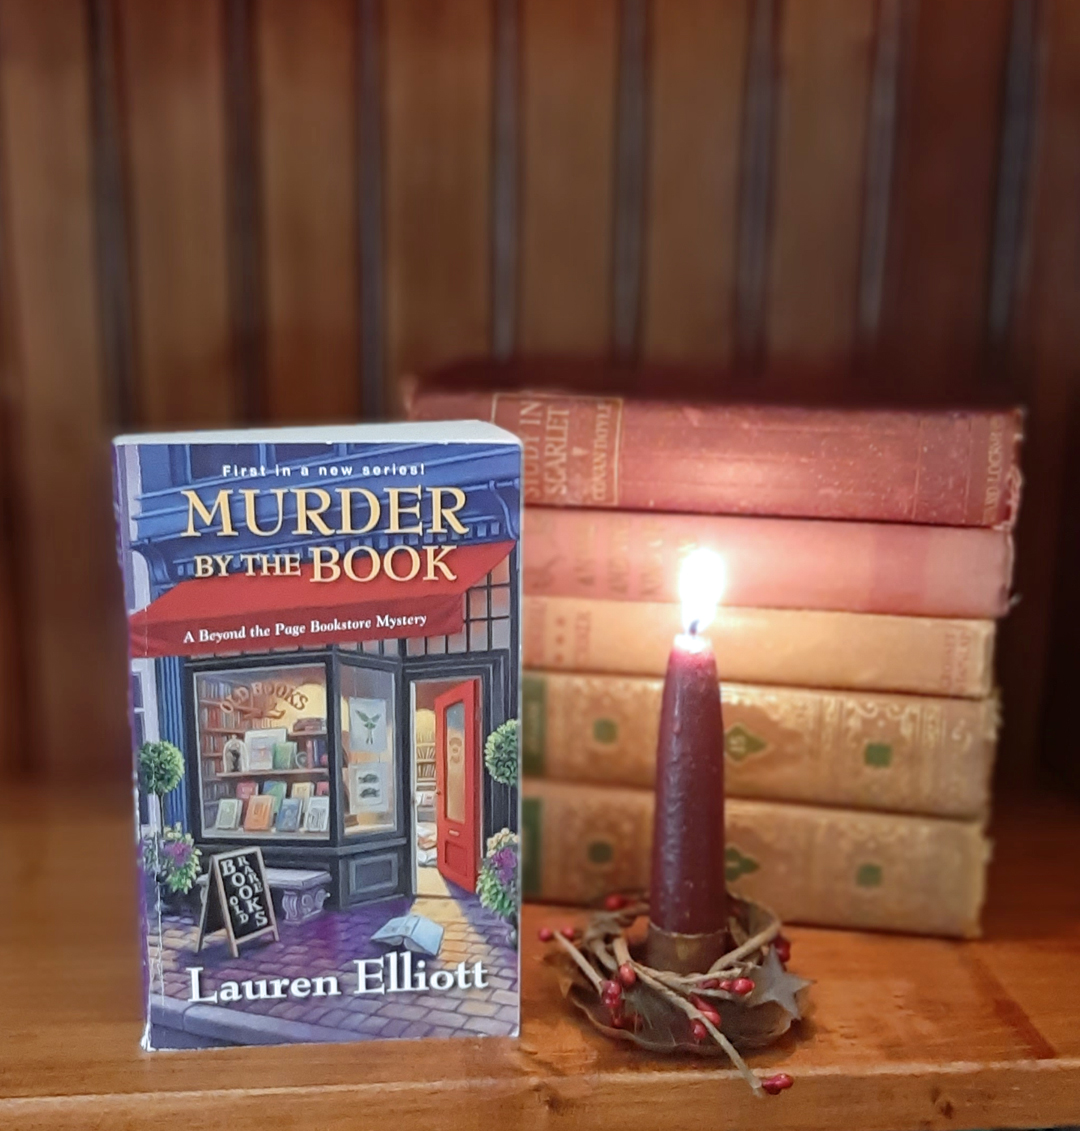 Lauren Elliott – Murder by the Book (A Beyond the Page Bookstore Mystery)